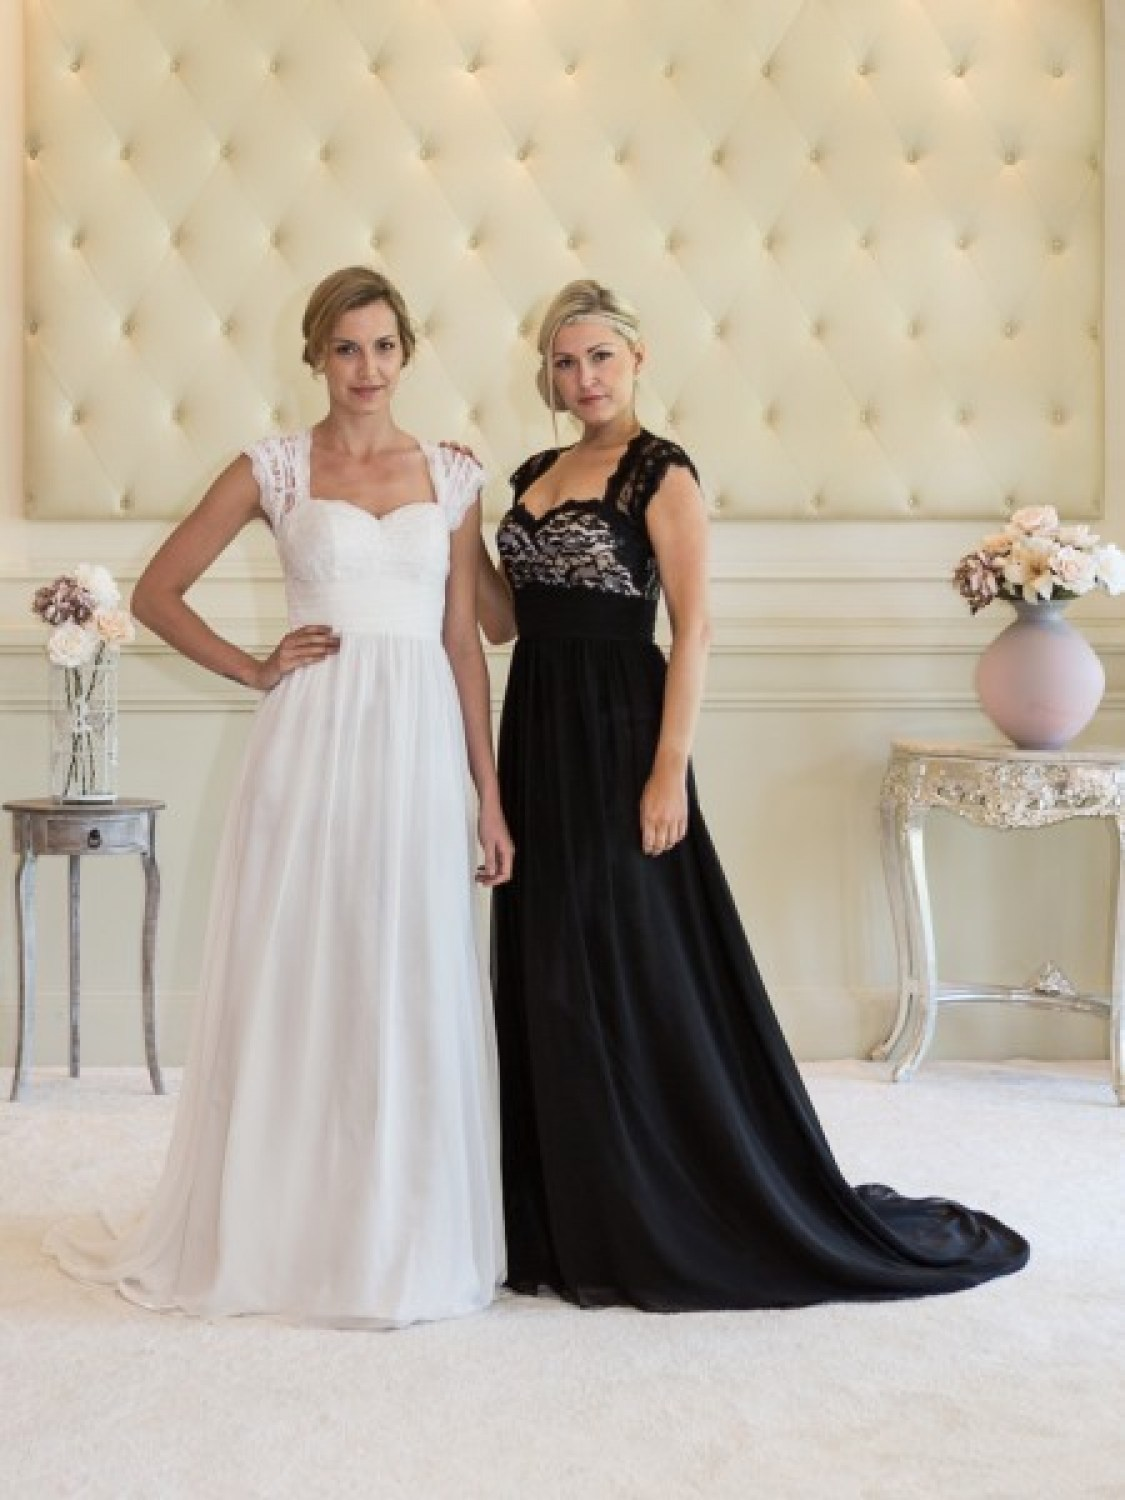 Bridal Gown Alteration Tailoring